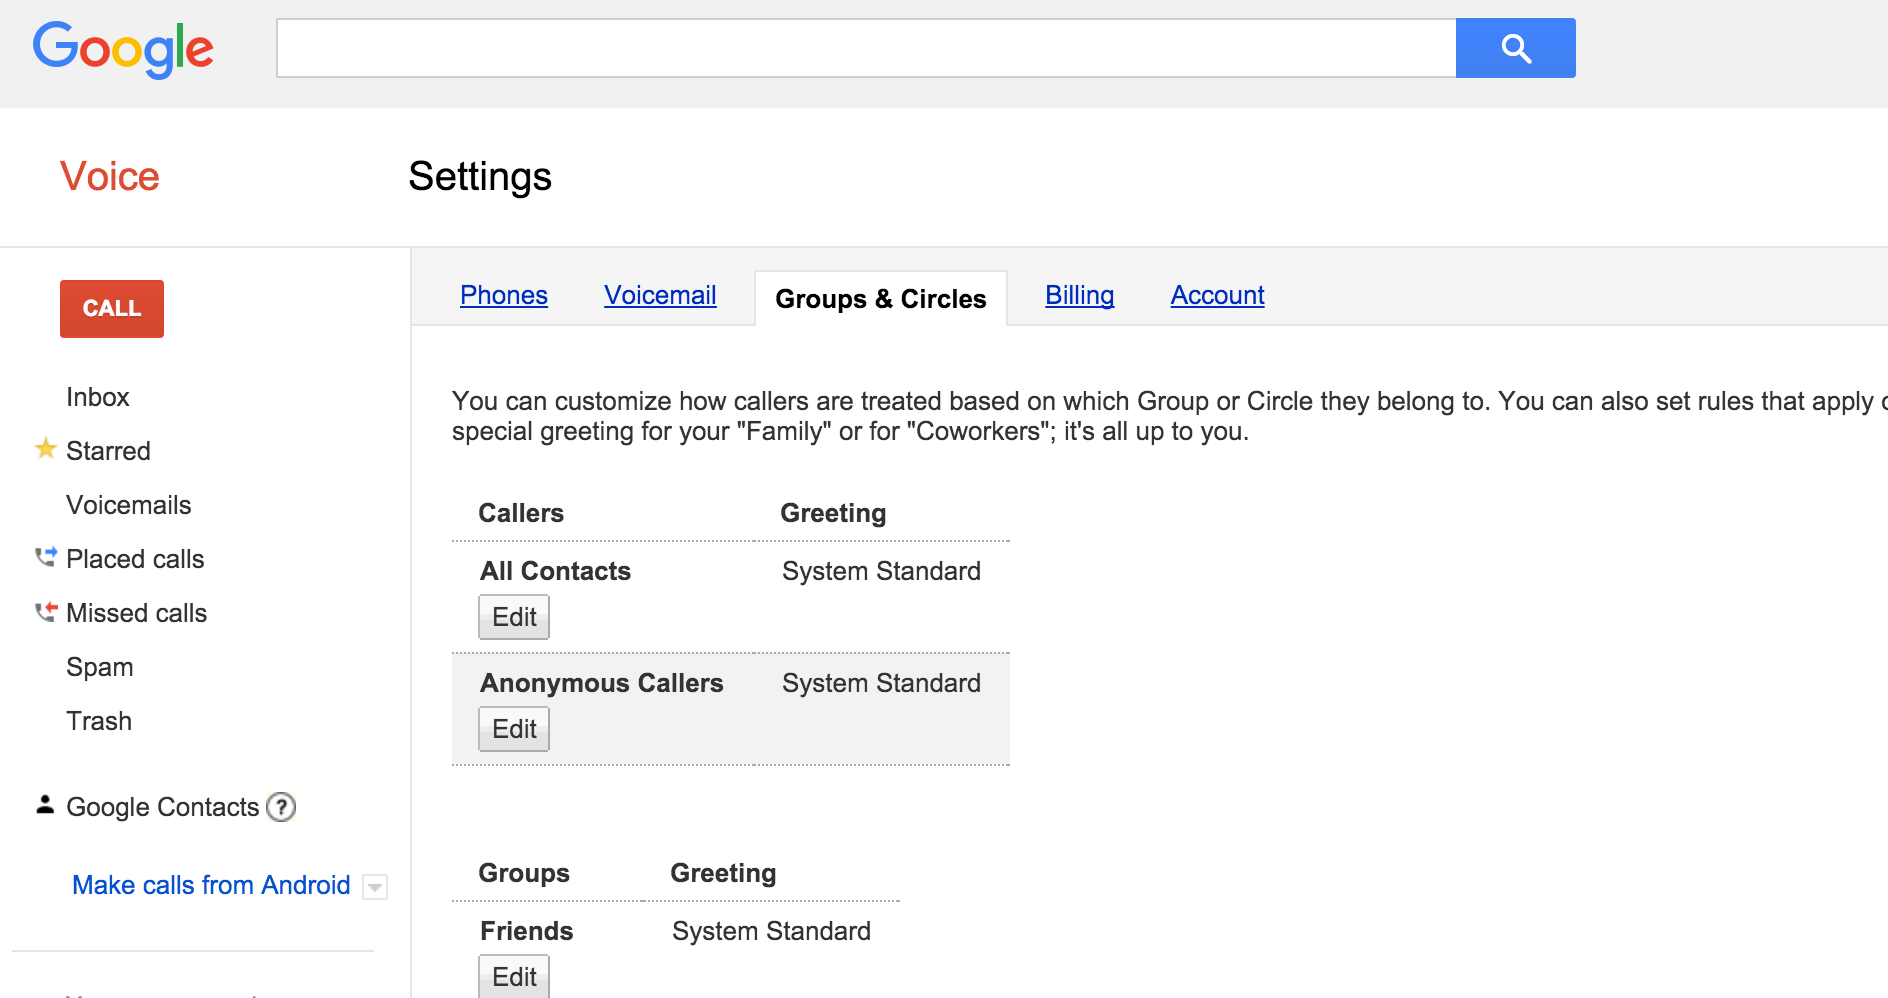 Should You Adopt Google Voice for Business?